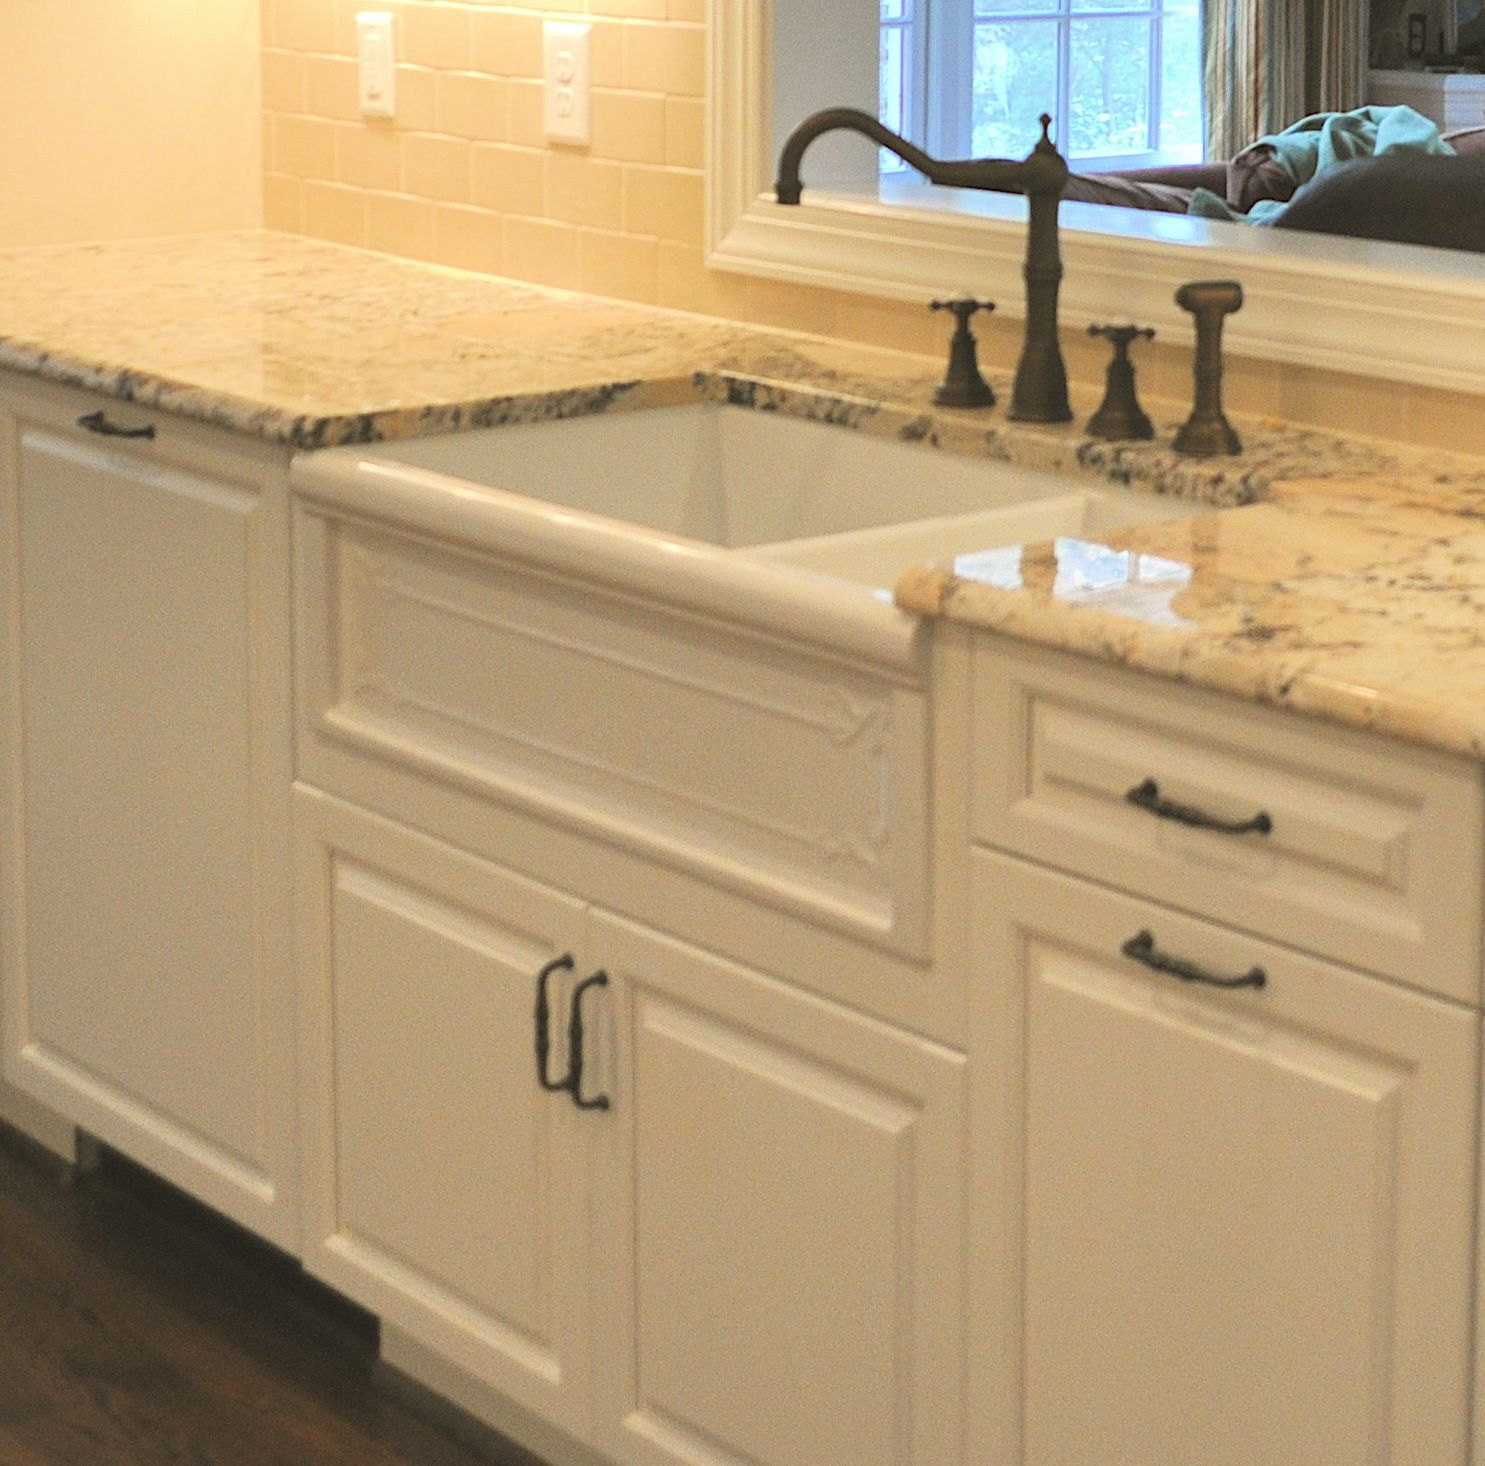 Antiqued Marble Countertops: Tasteful Antique Iron Taps With Single White Porcelain Farmhouse Sinks And Sweet White Granite